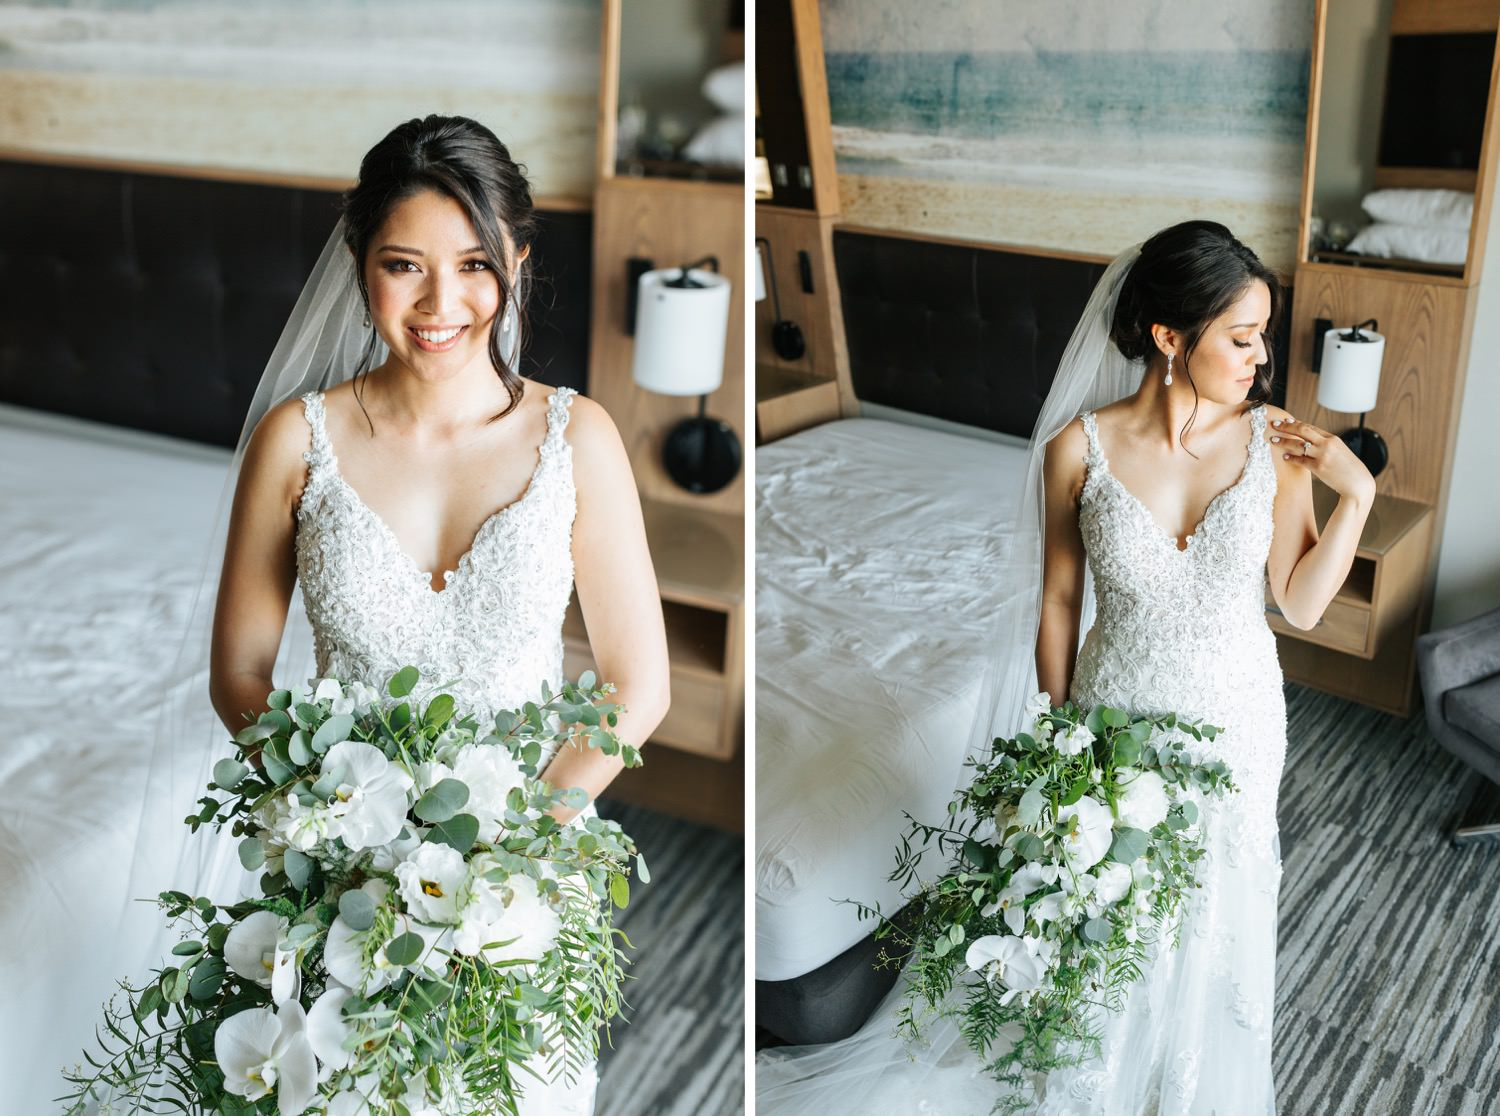 Wedding Inspiration - Bride Photos - LA Bride - https://brittneyhannonphotography.com